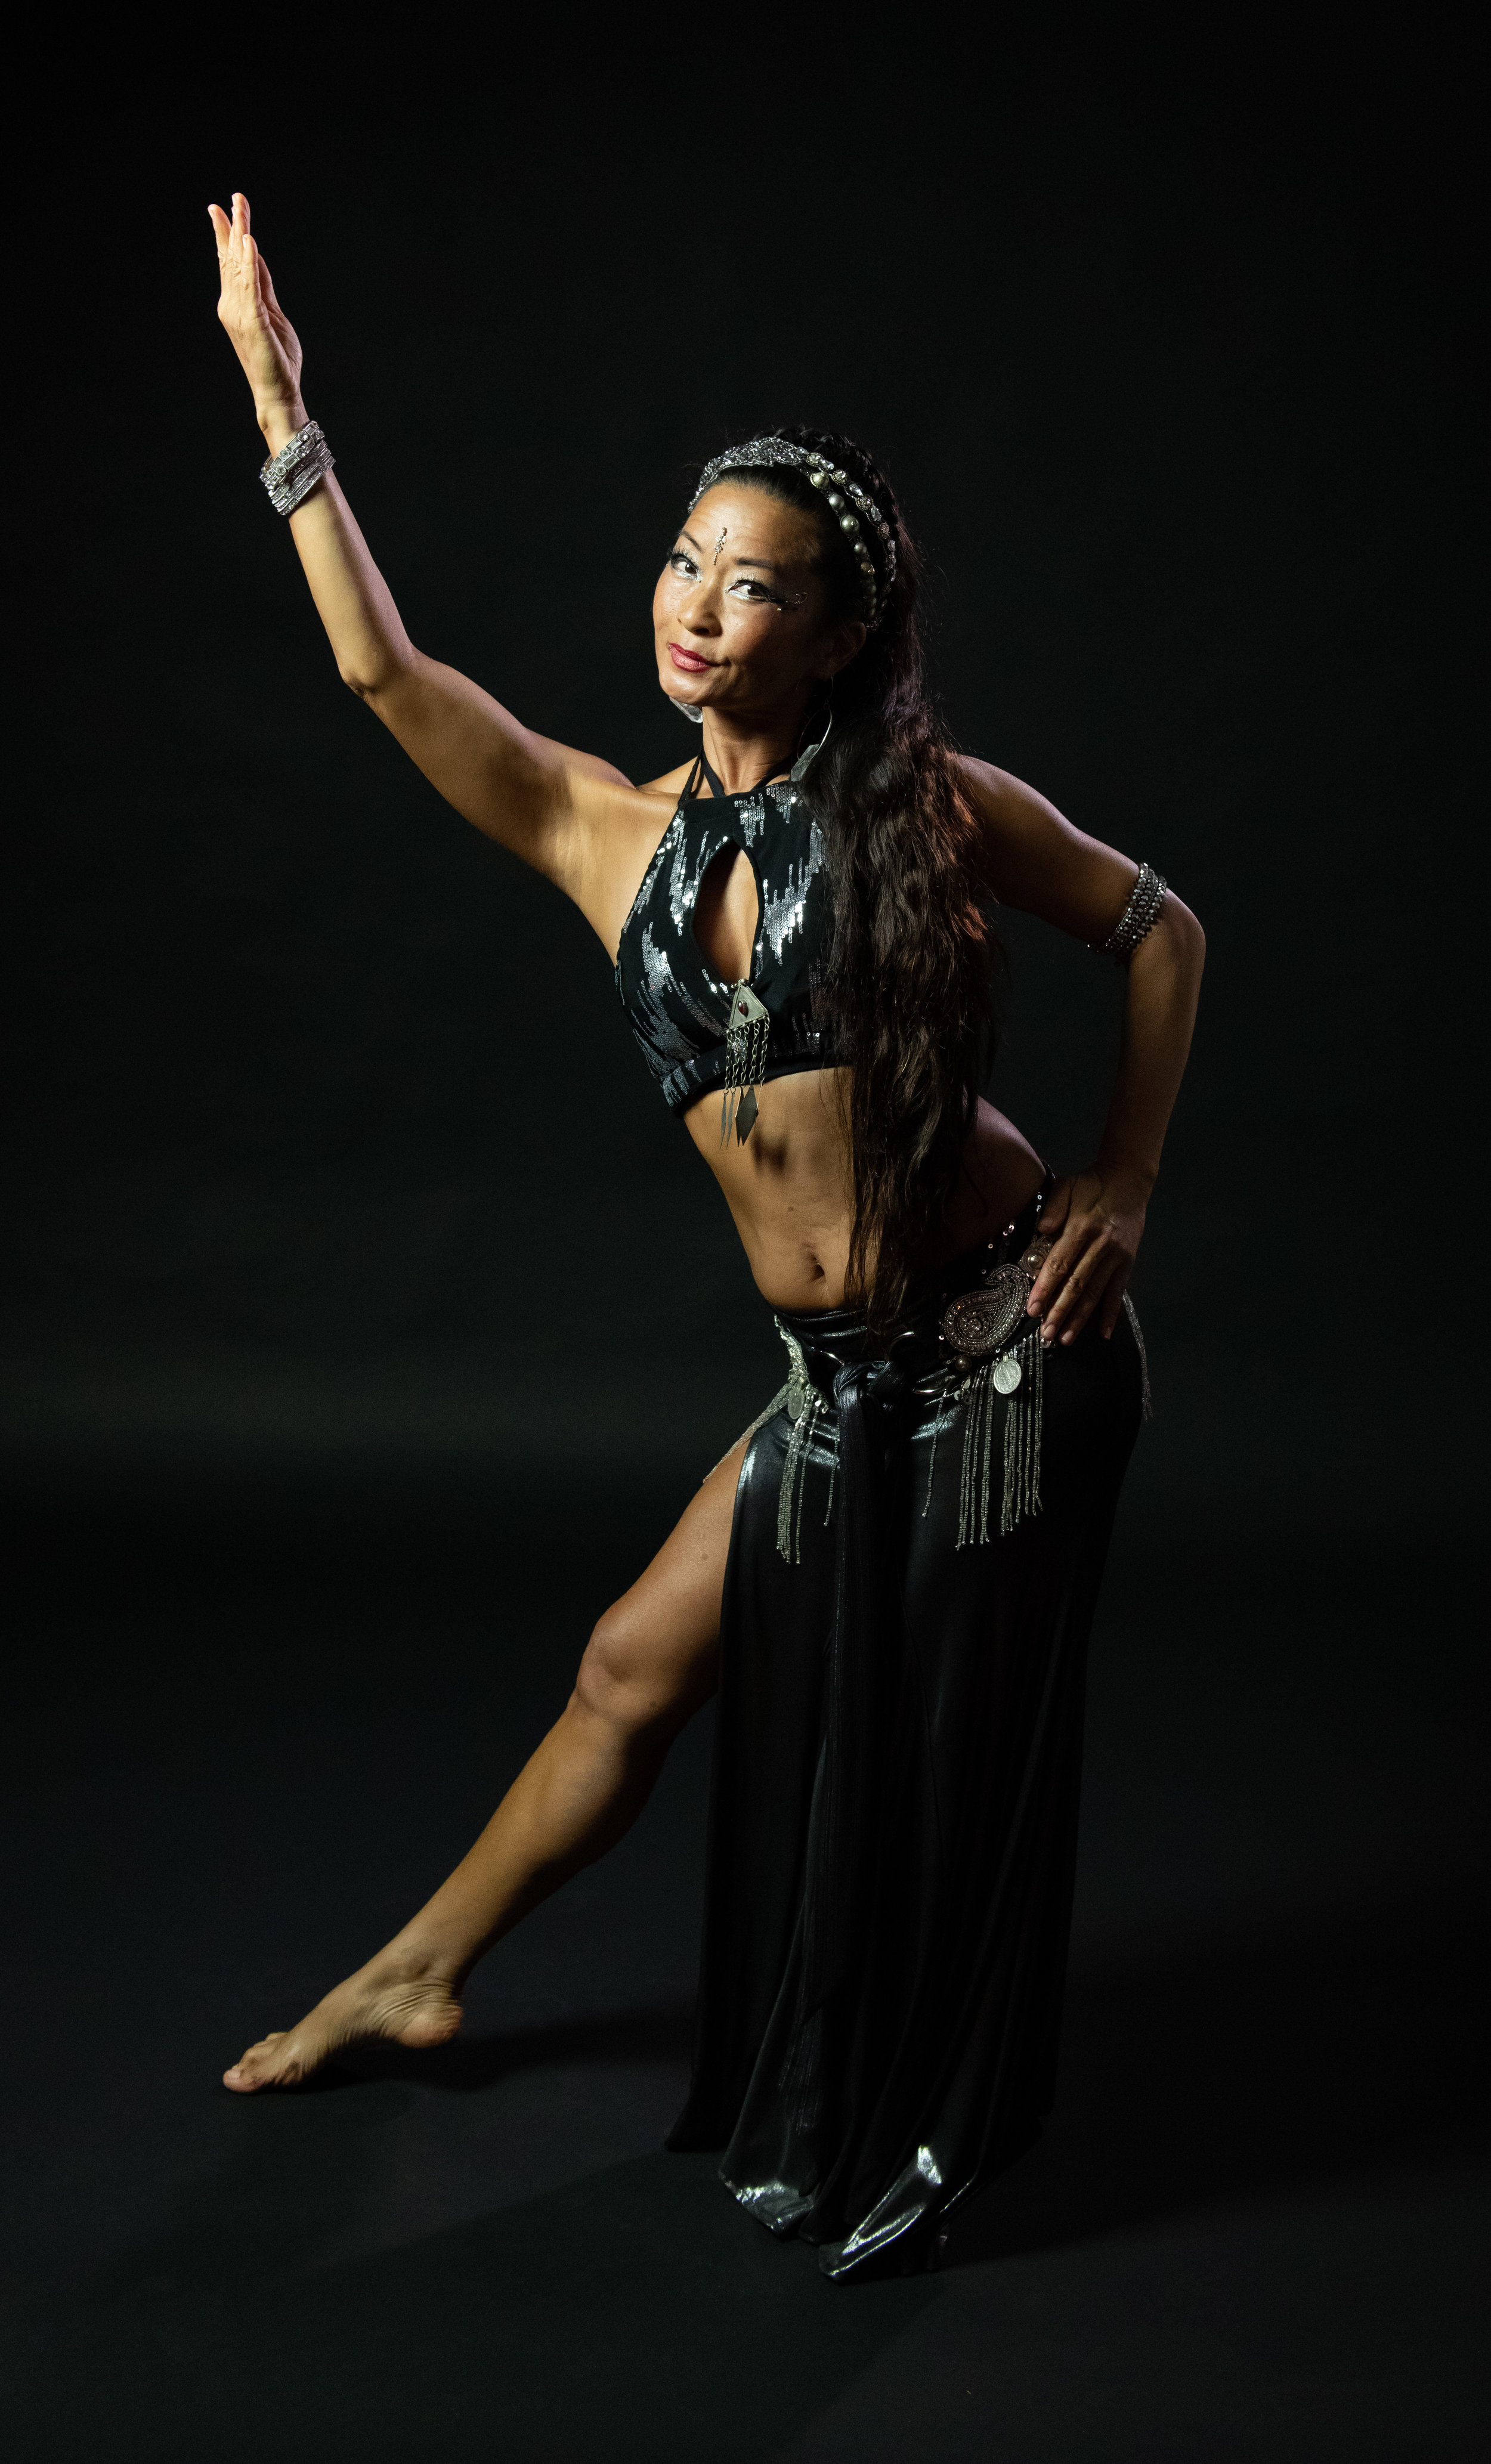 Juyhun Kim  Juyhun is a healing artist and holistic physical therapist who likes to explore the various forms of movement through various dance styles ( belly dance, contact dance, qigong , Tahitian, hula, Odissi )  She is passionate about the potential power of alchemy incorporating conscious movement and different healing modalities.  Through intention, cultivation of the energetic elements of nature, and creative self-expression, one can ultimately transform, heal, and vitalize our bodies and others.